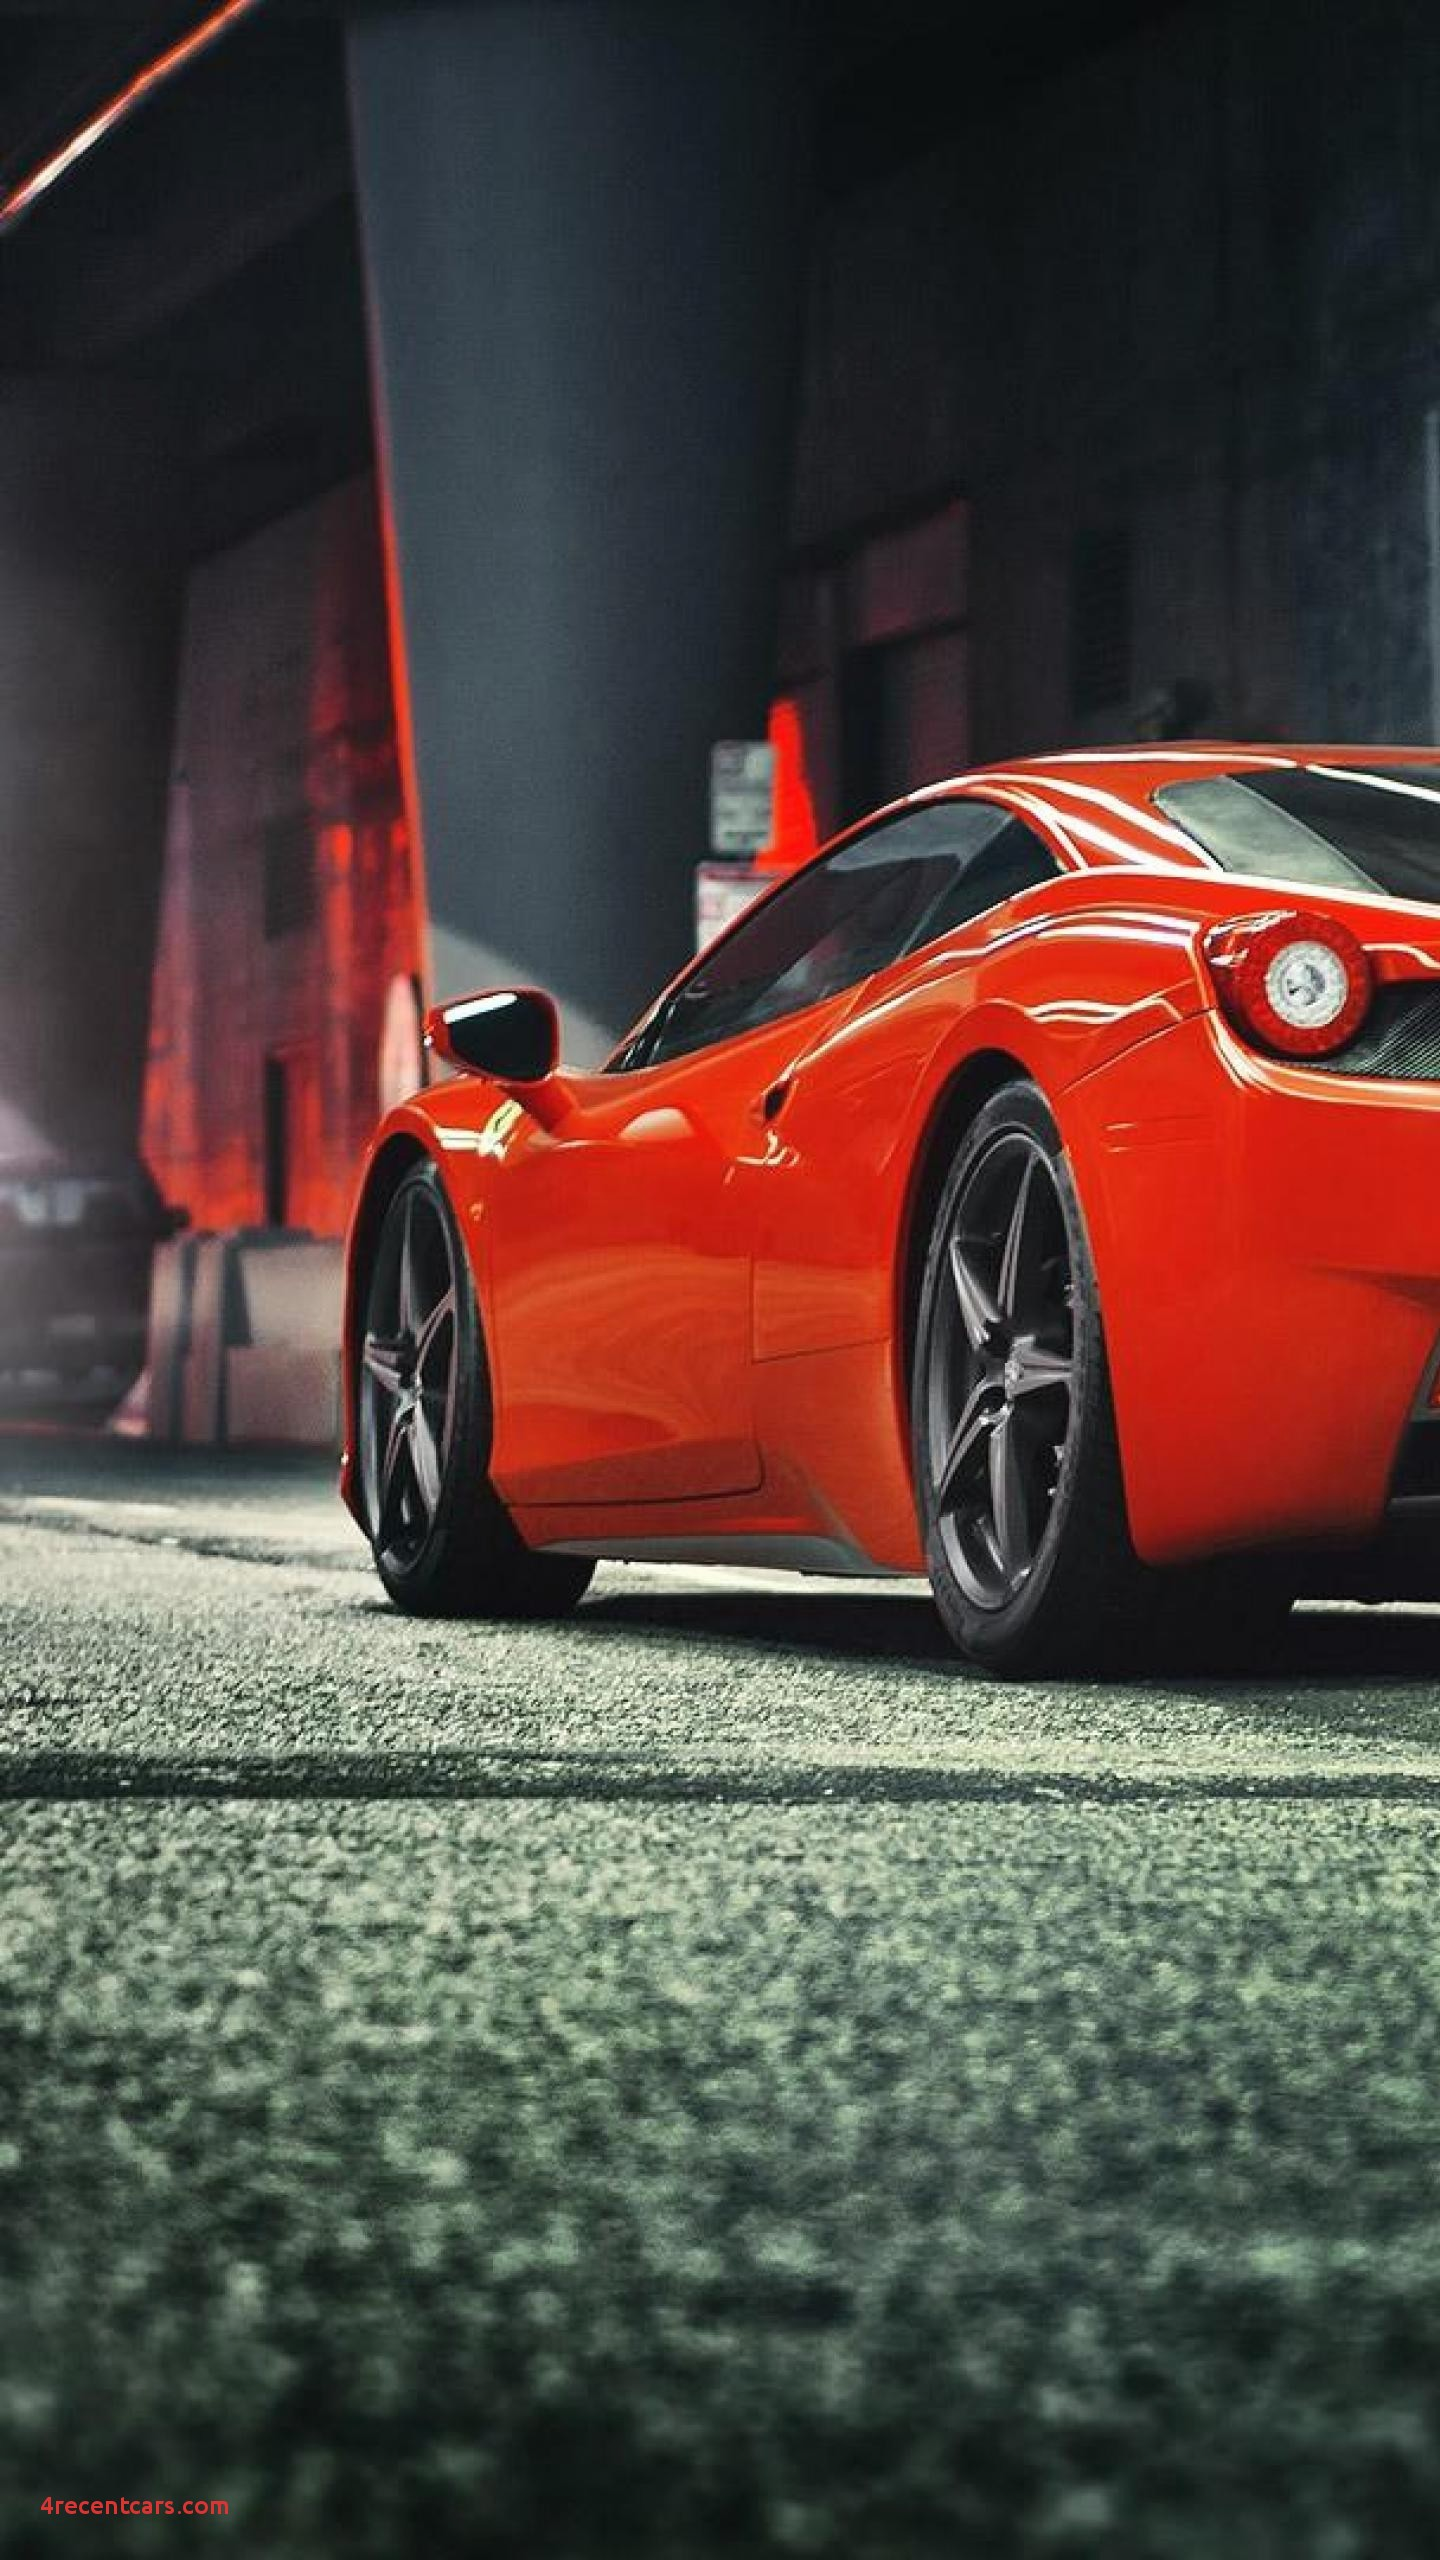 Car Wallpaper For Android Mobile Hd Best Of Car Hd Full Hd Wallpaper Of Car For Mobile 1060x1884 Wallpaper Teahub Io